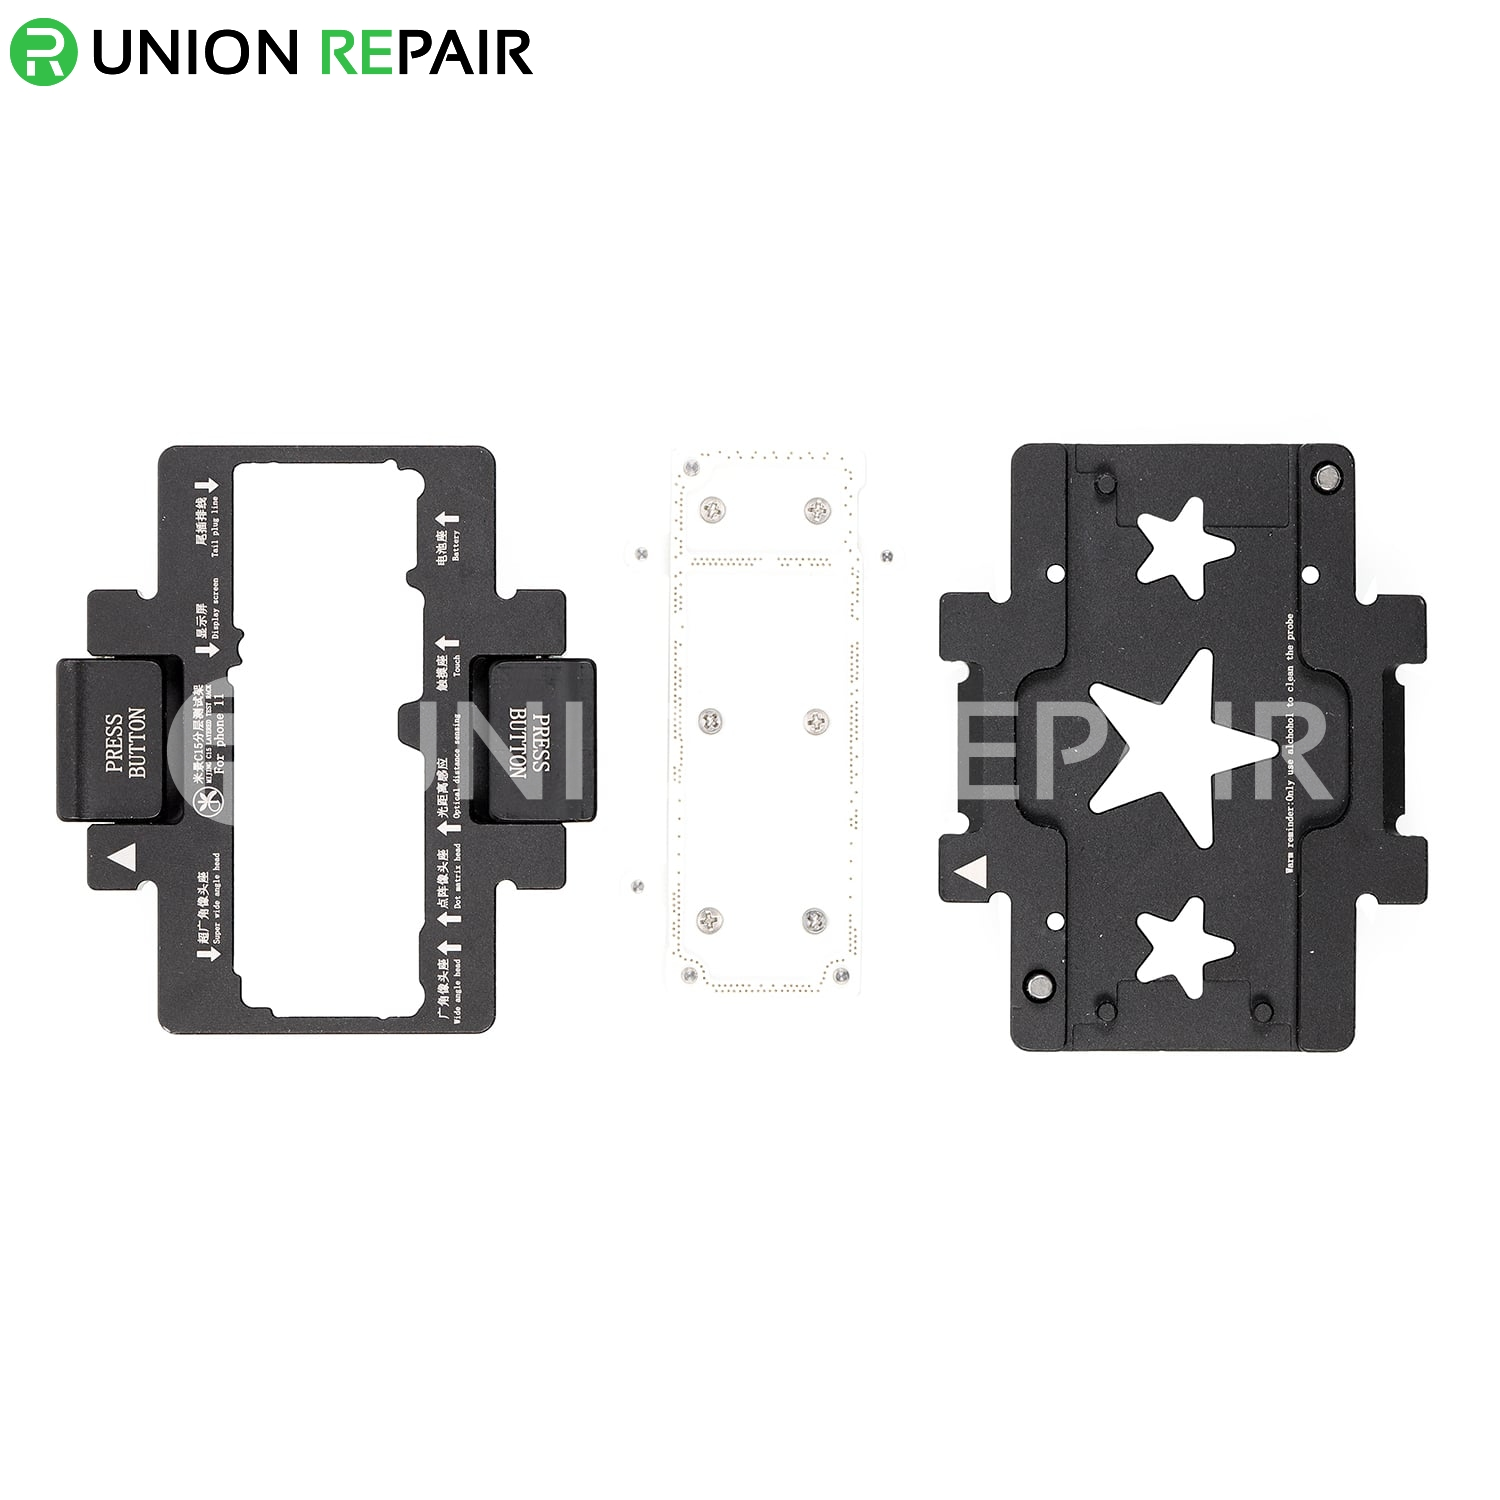 MiJing C15 iPhone 11 Main Board Function Testing Fixture